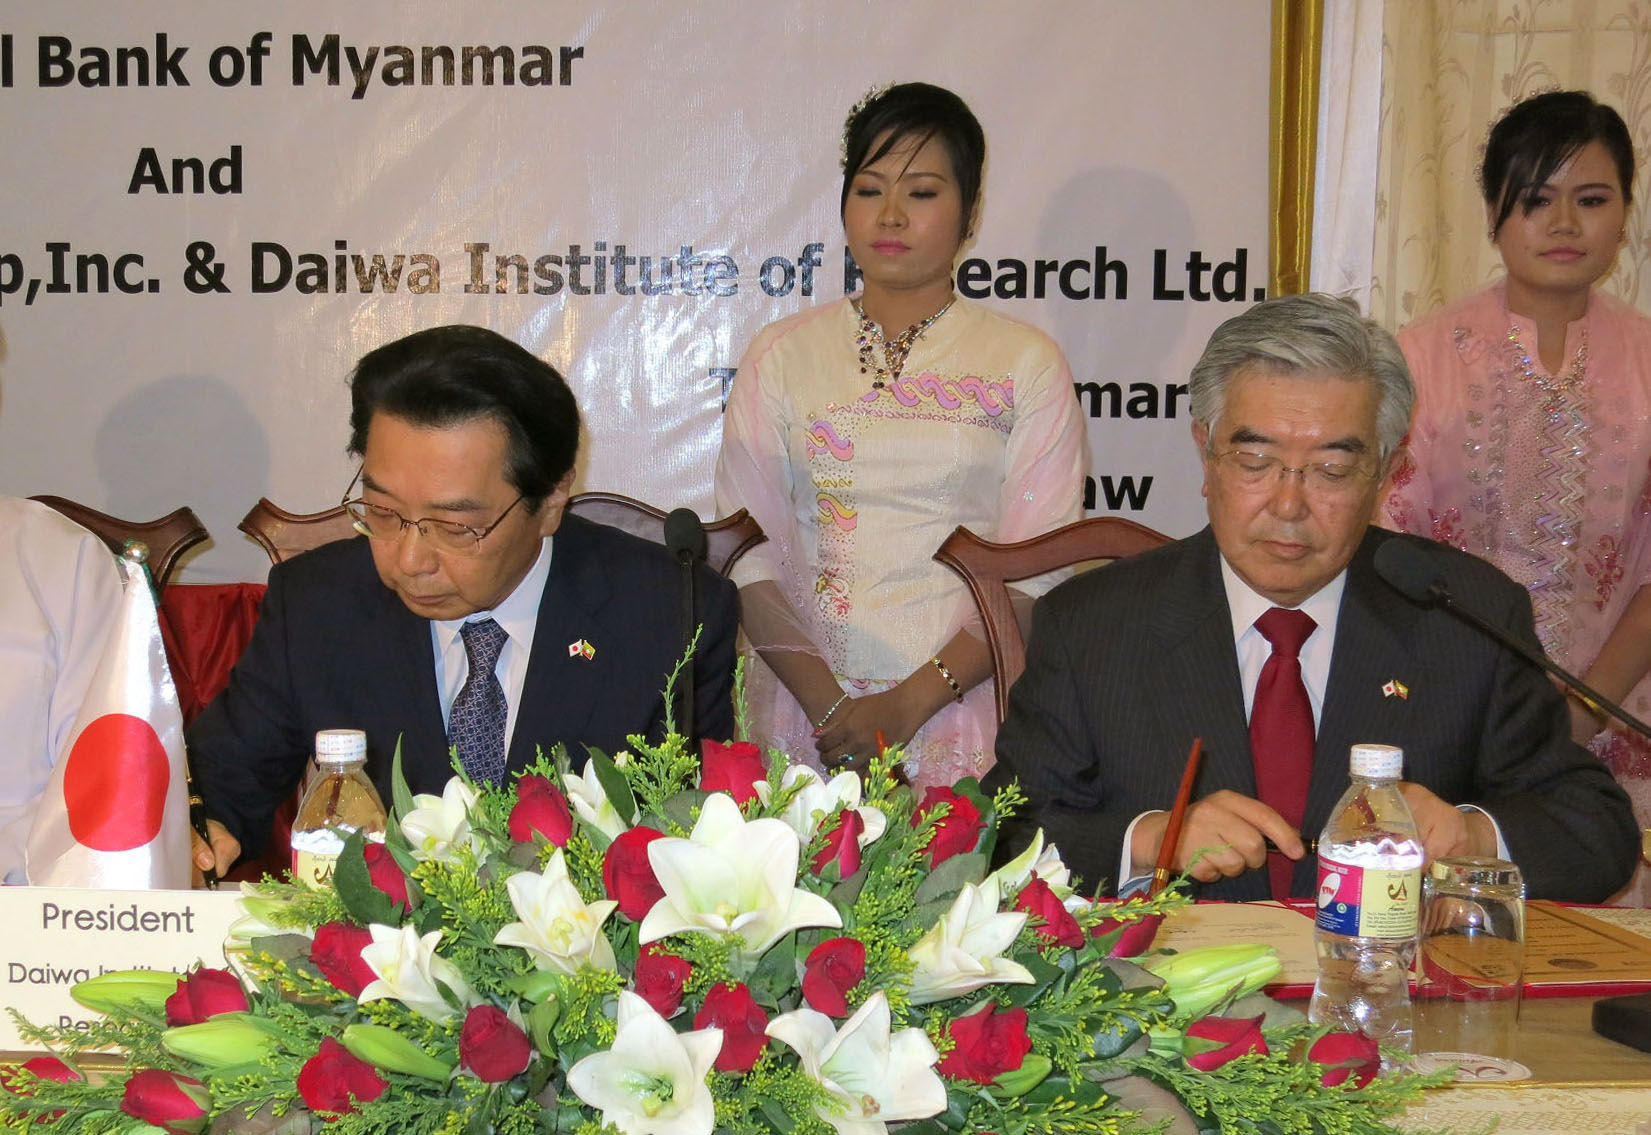 Getting their foot in the door: Tokyo Stock Exchange President Atsushi Saito (right) and Daiwa Institute of Research President Takashi Fukai sign an agreement to help Myanmar set up its first stock exchange, in Naypyitaw on May 29. | KYODO